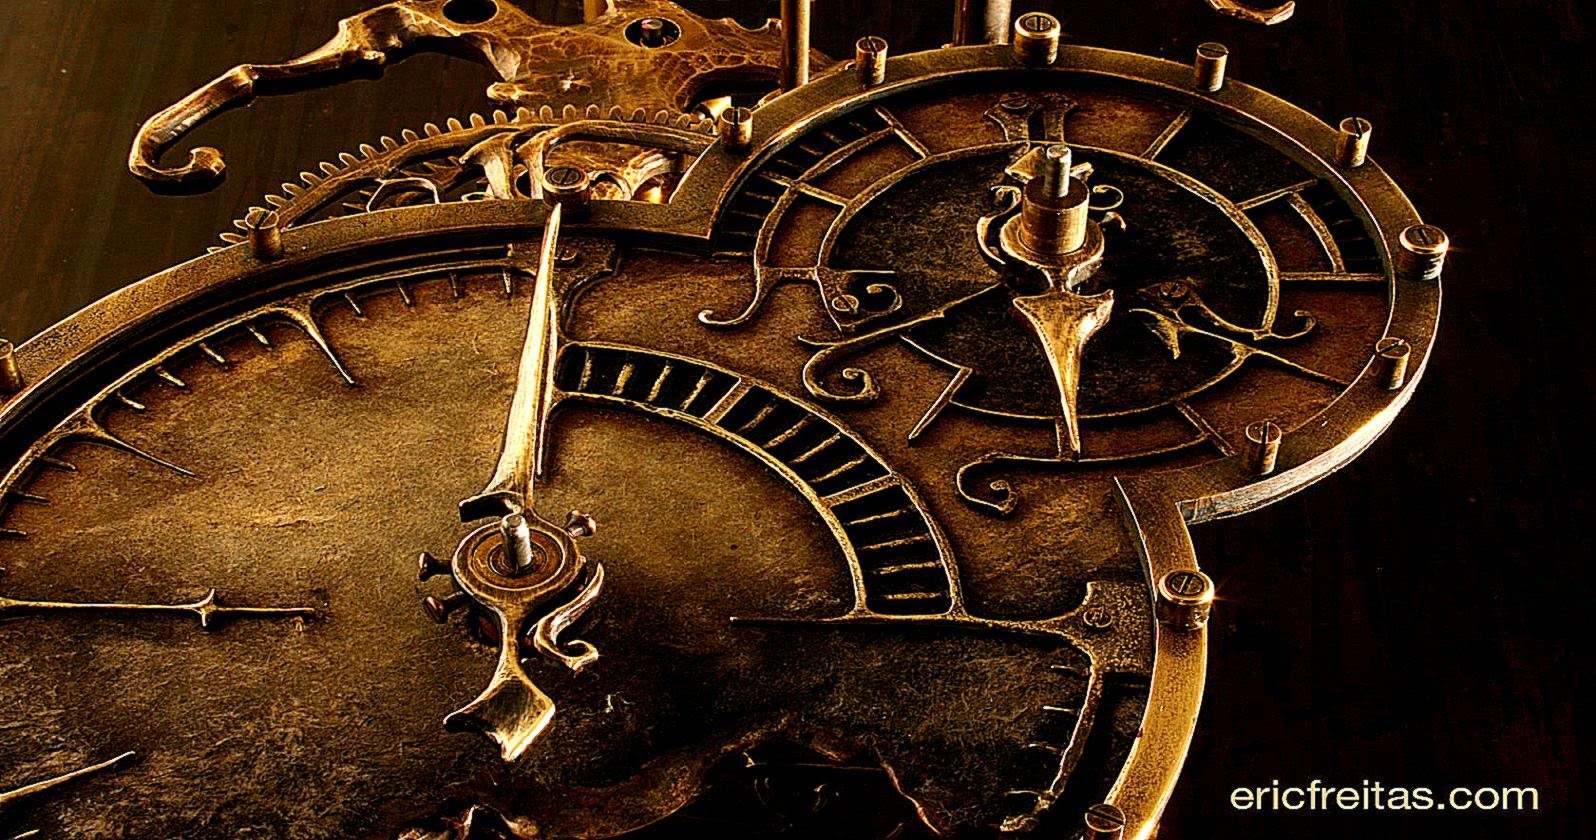 Steampunk HD Wallpapers